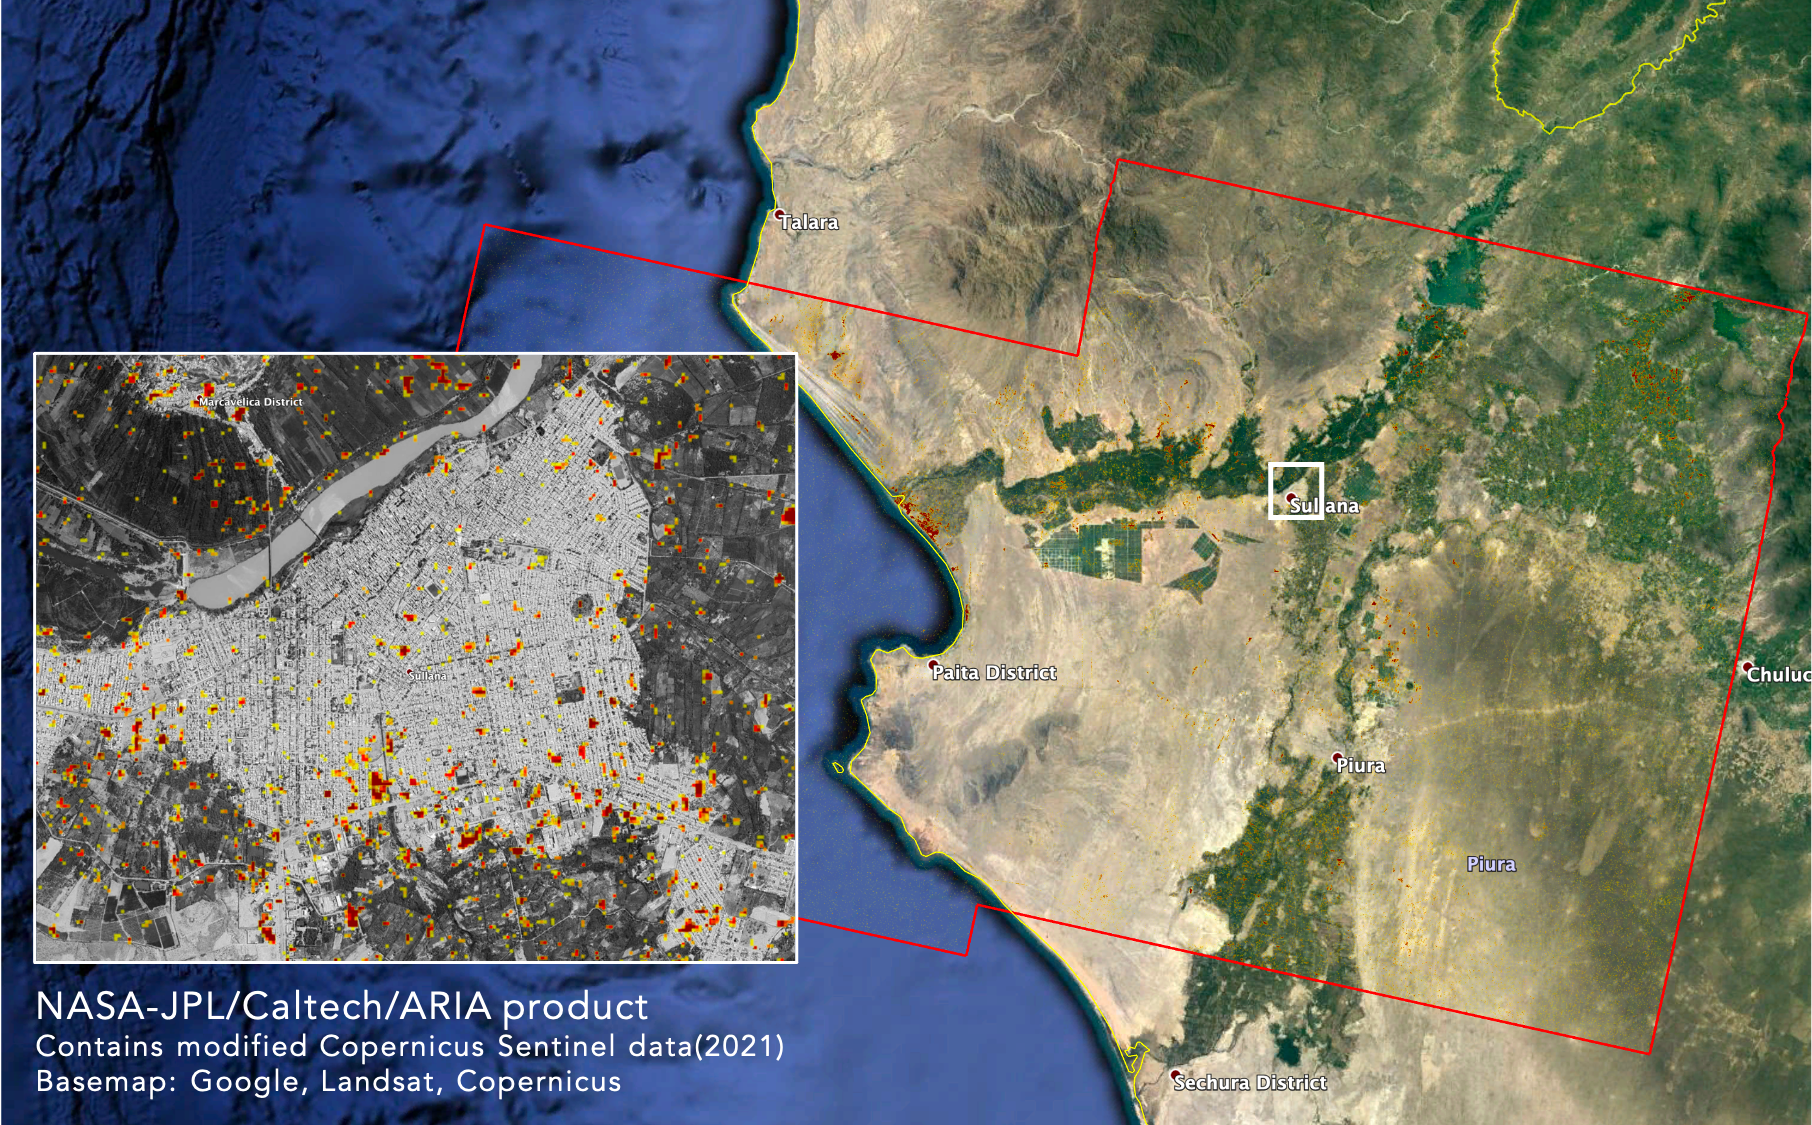 Damage Proxy Map (DPM) from ARIA team at NASA JPL depicting areas that are likely damaged by the recent Mw 6.2 July 30, 2021 earthquake beneath the ESE of Sullana, Peru.